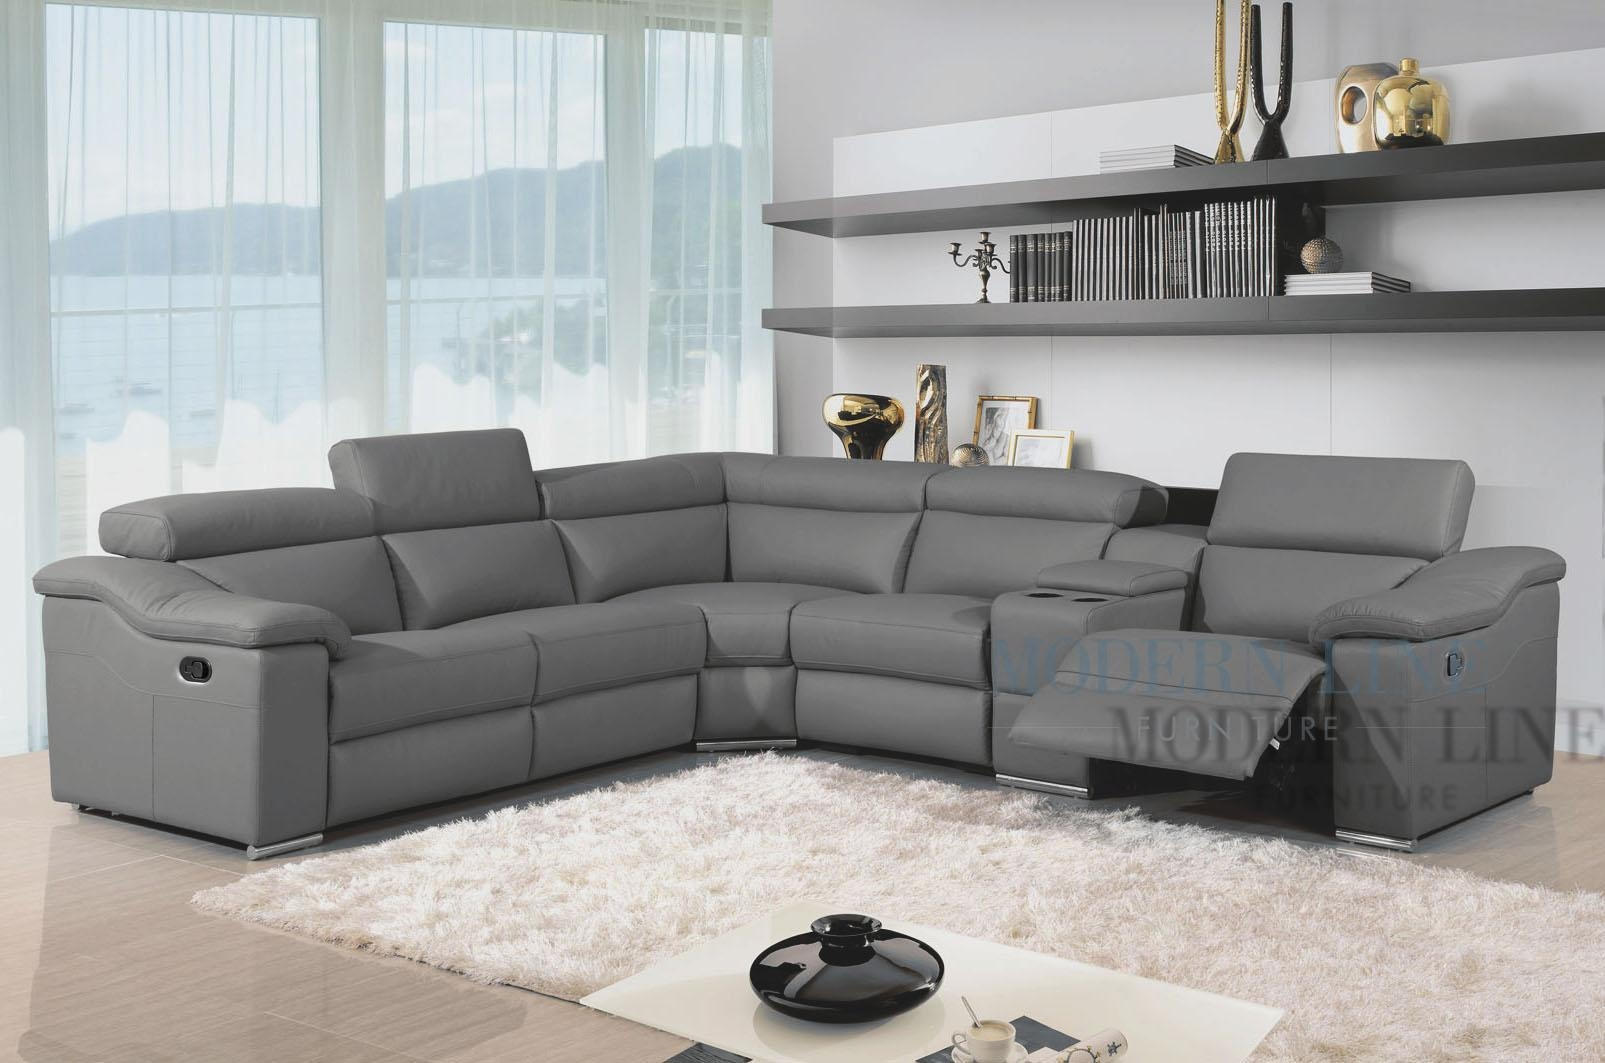 Furniture: Fantastic Sectional Couches With Recliners For Your In Cheap Reclining Sectionals (Image 5 of 15)